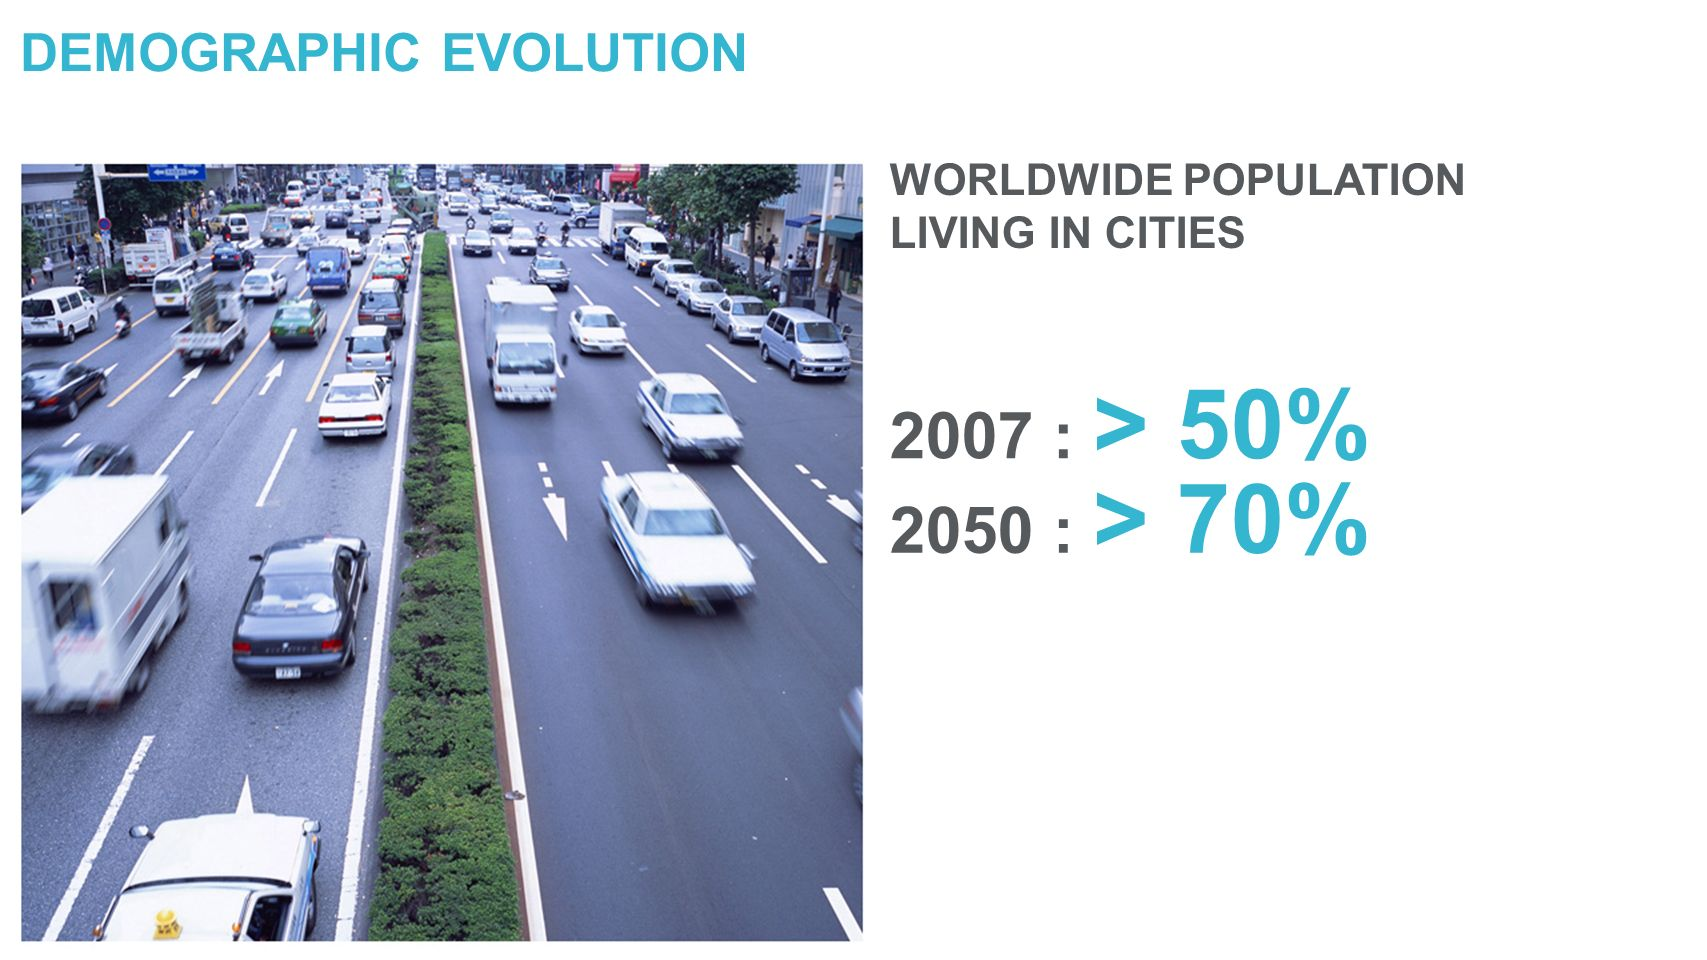 DEMOGRAPHIC EVOLUTION WORLDWIDE POPULATION LIVING IN CITIES 2007 : > 50% 2050 : > 70%